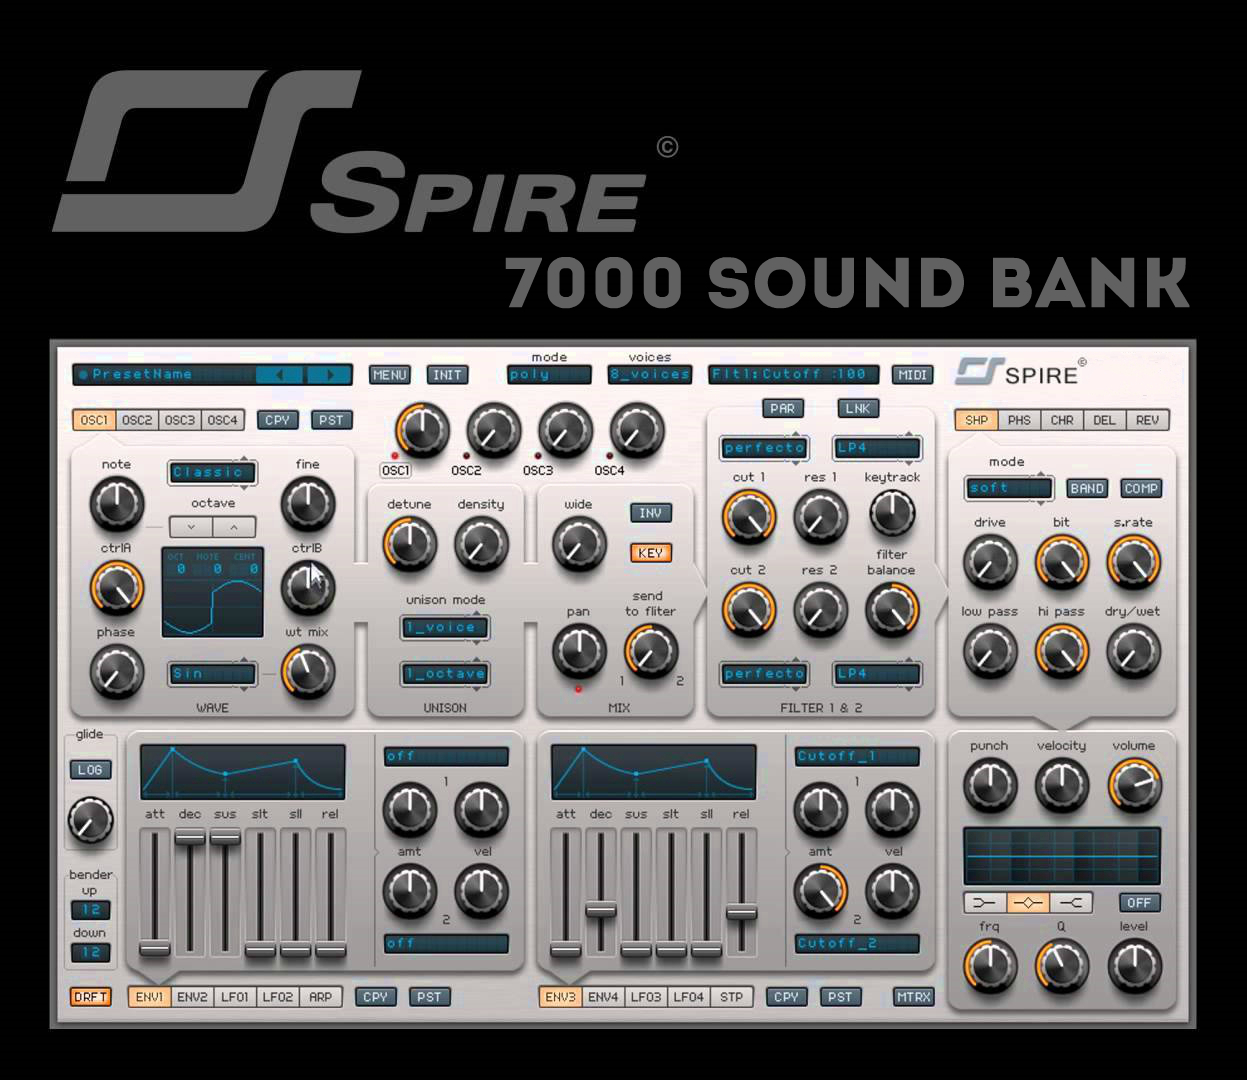 SPIRE VST 7000 Sound Bank